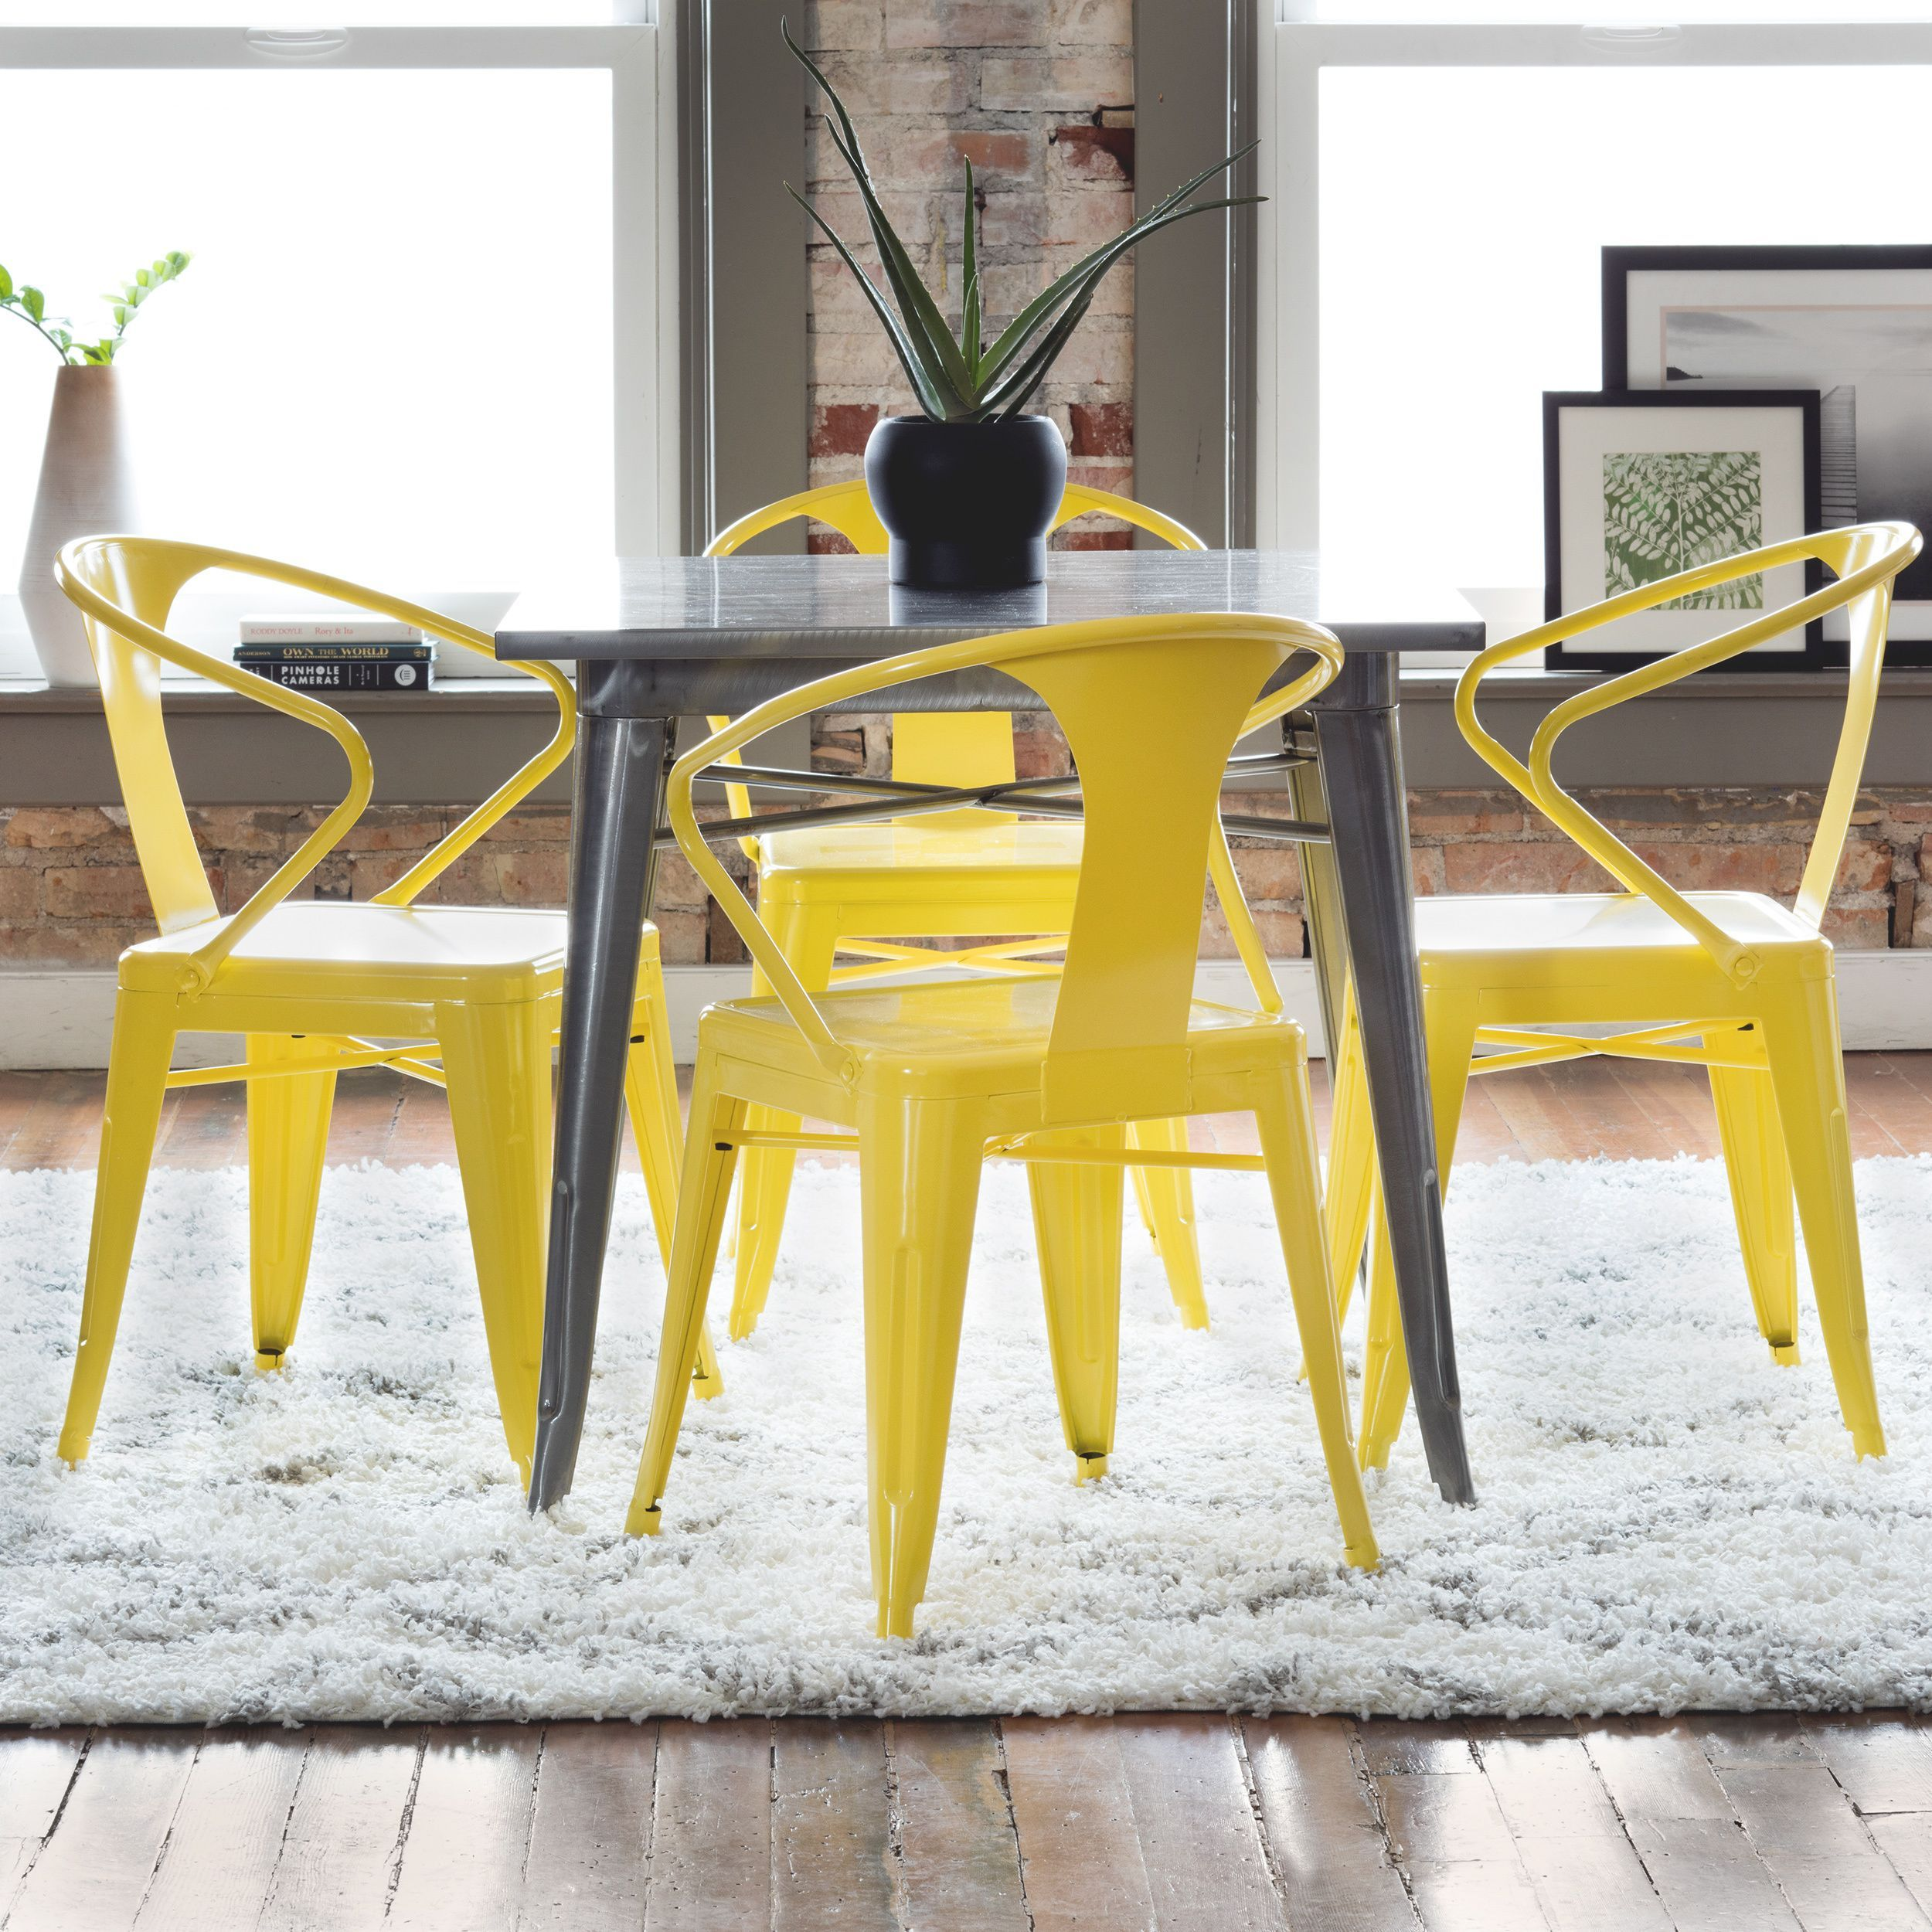 Lemon Metal Stacking Chairs Set Of 4 Metal Dining Room Chairs